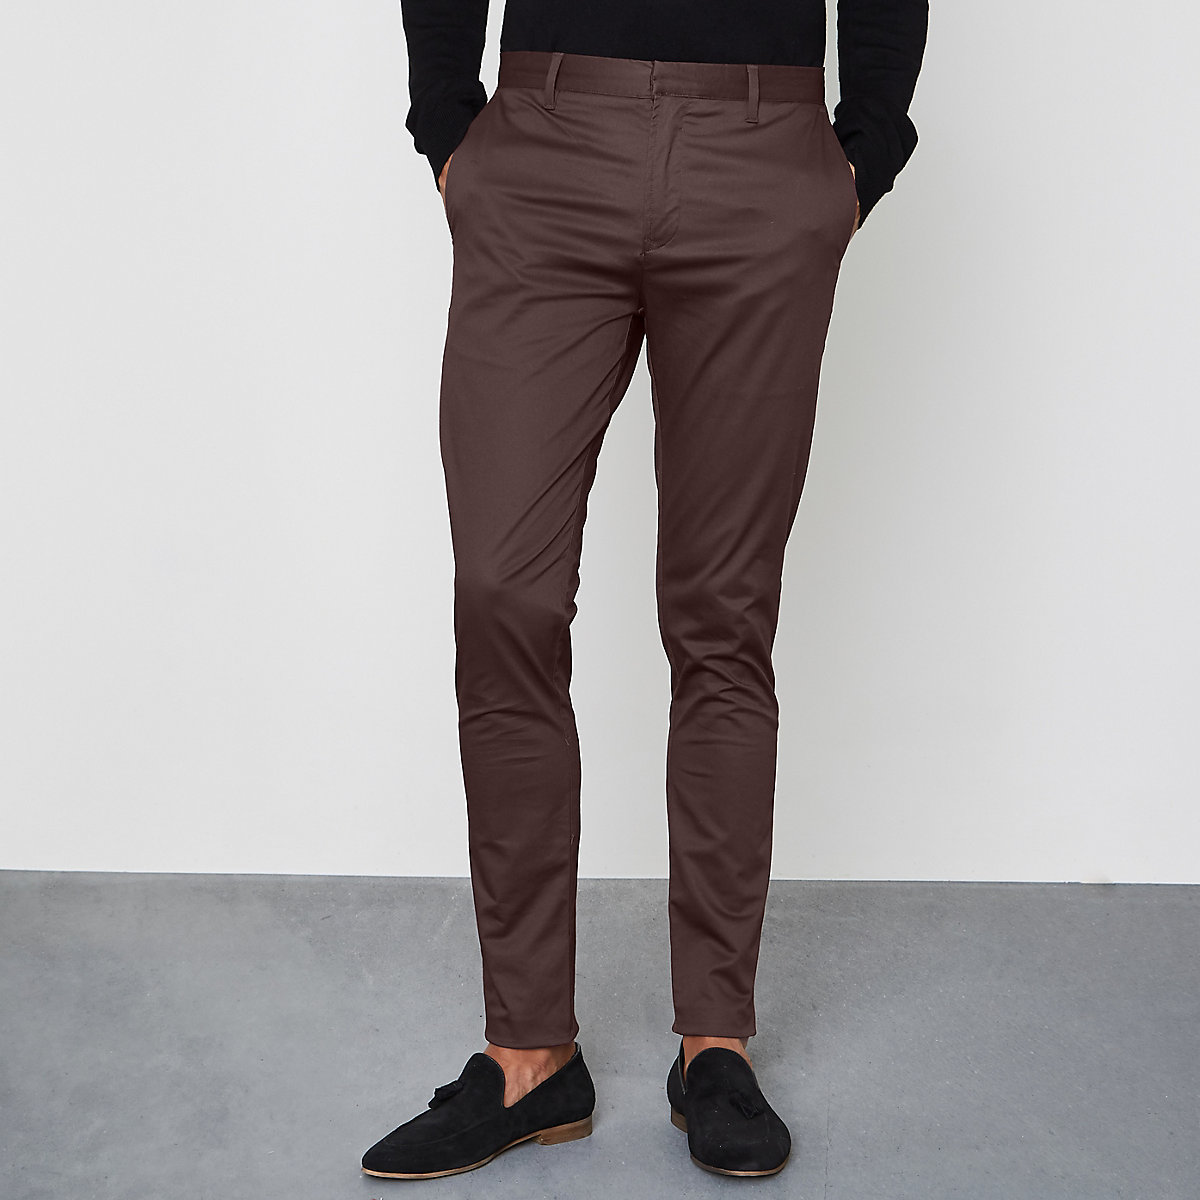 Burgundy skinny fit chino trousers